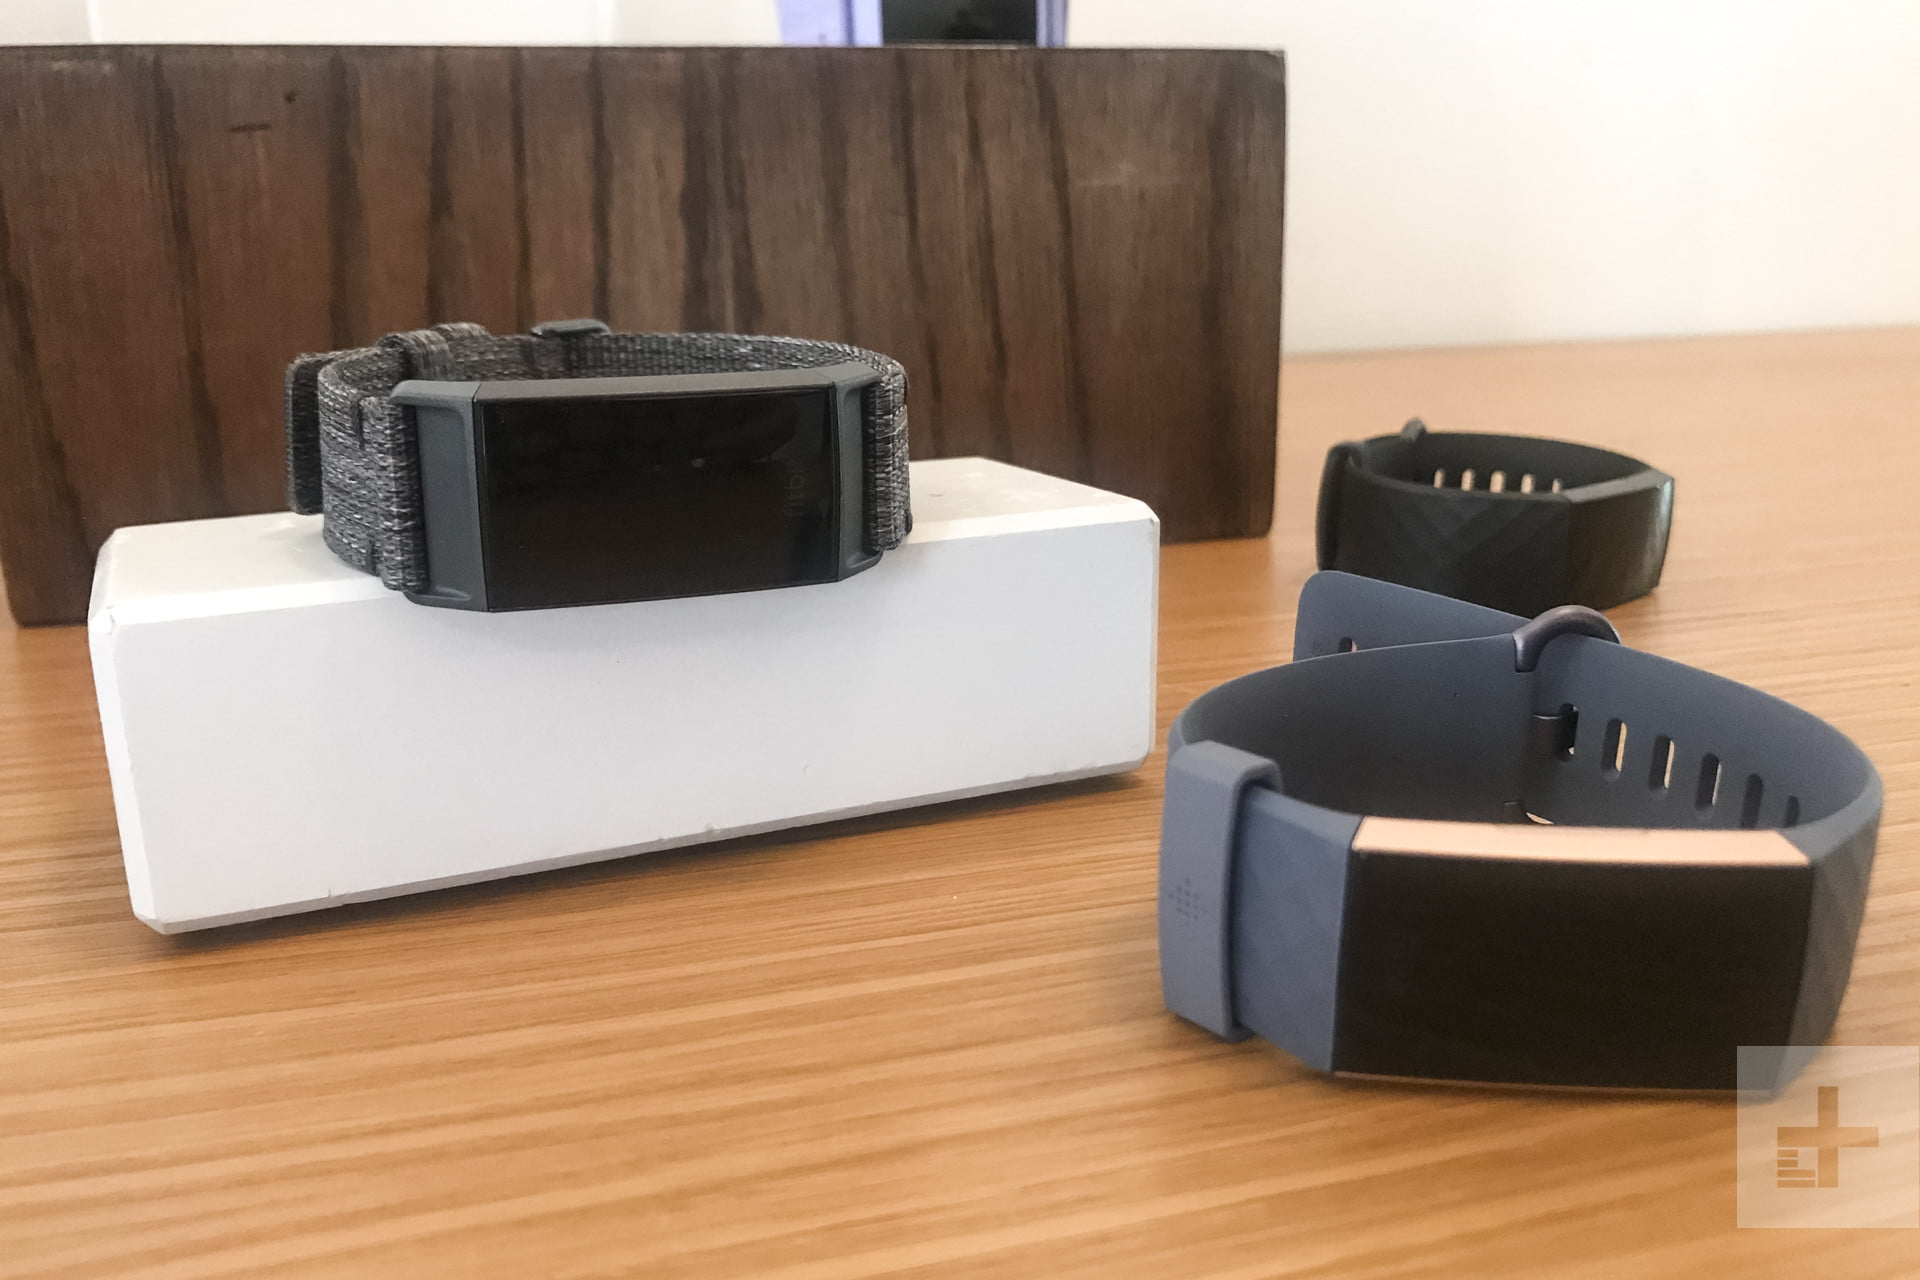 Fitbit Charge 3 hands-on preview - F3News